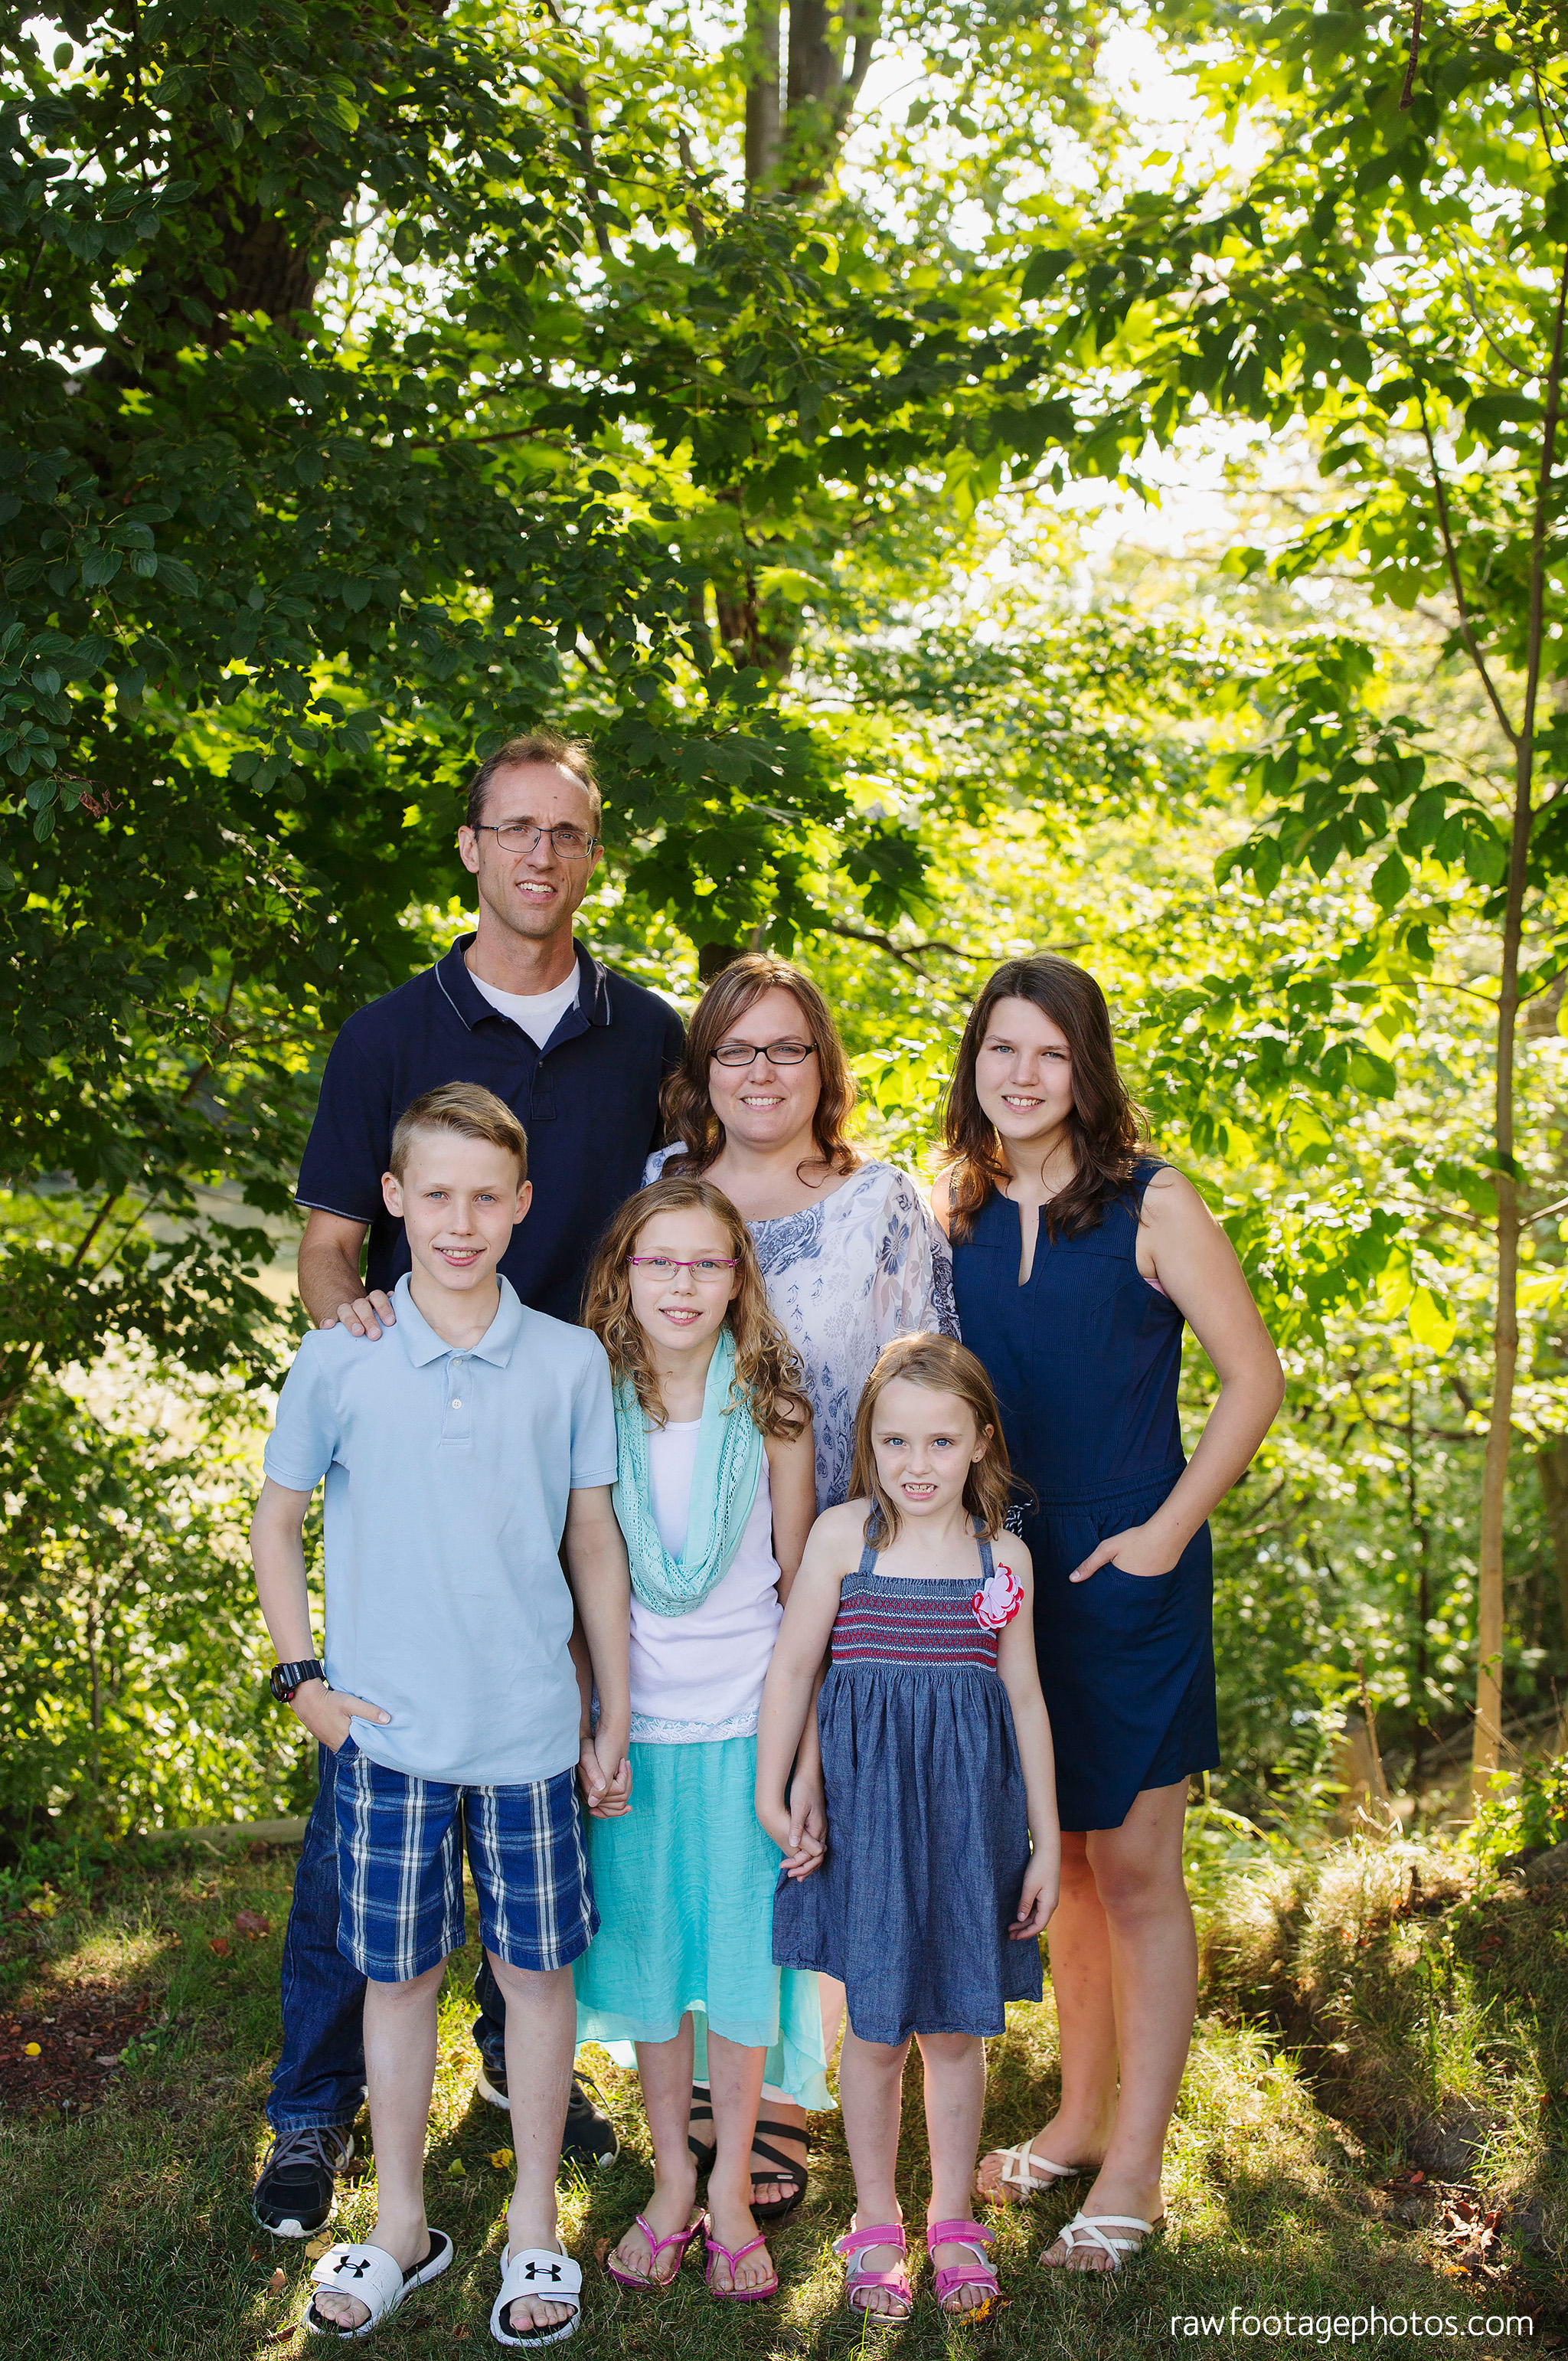 london_ontario_extended_family_backyard_session-raw_footage_photography023.jpg